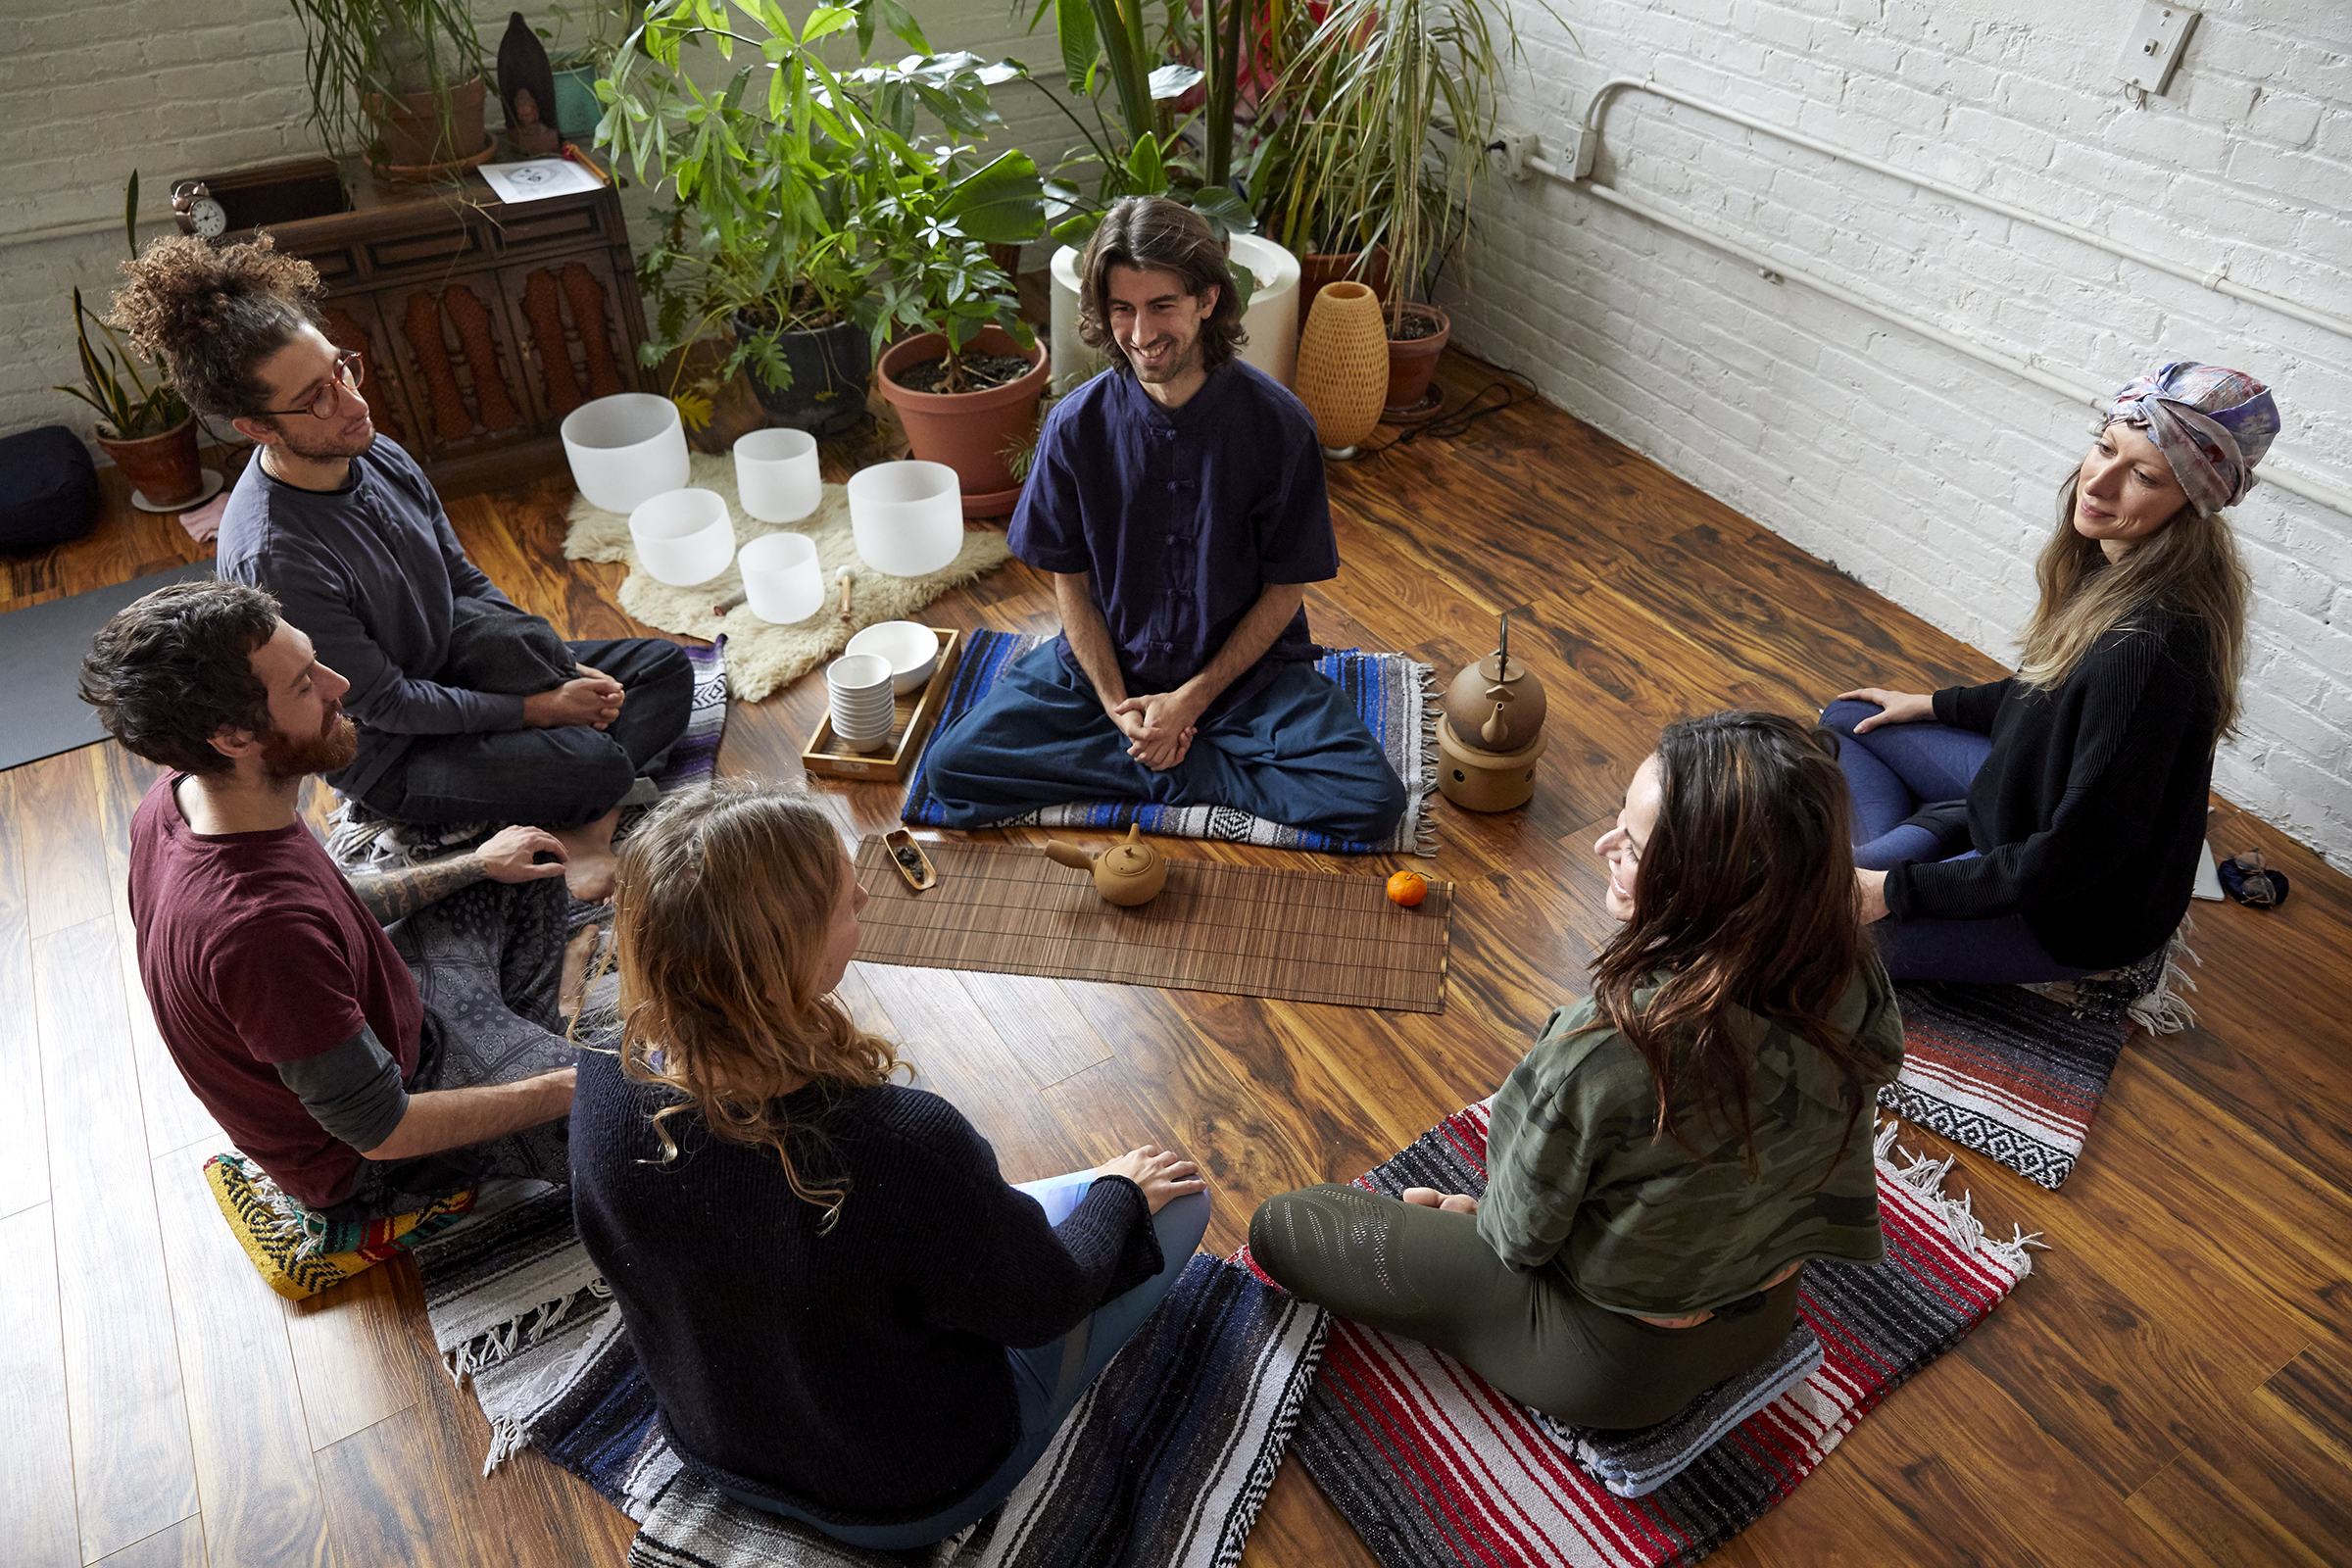 Patrick Manian leading Tea Ceremony & Meditation / Photo by: Kourosh Sotoodeh